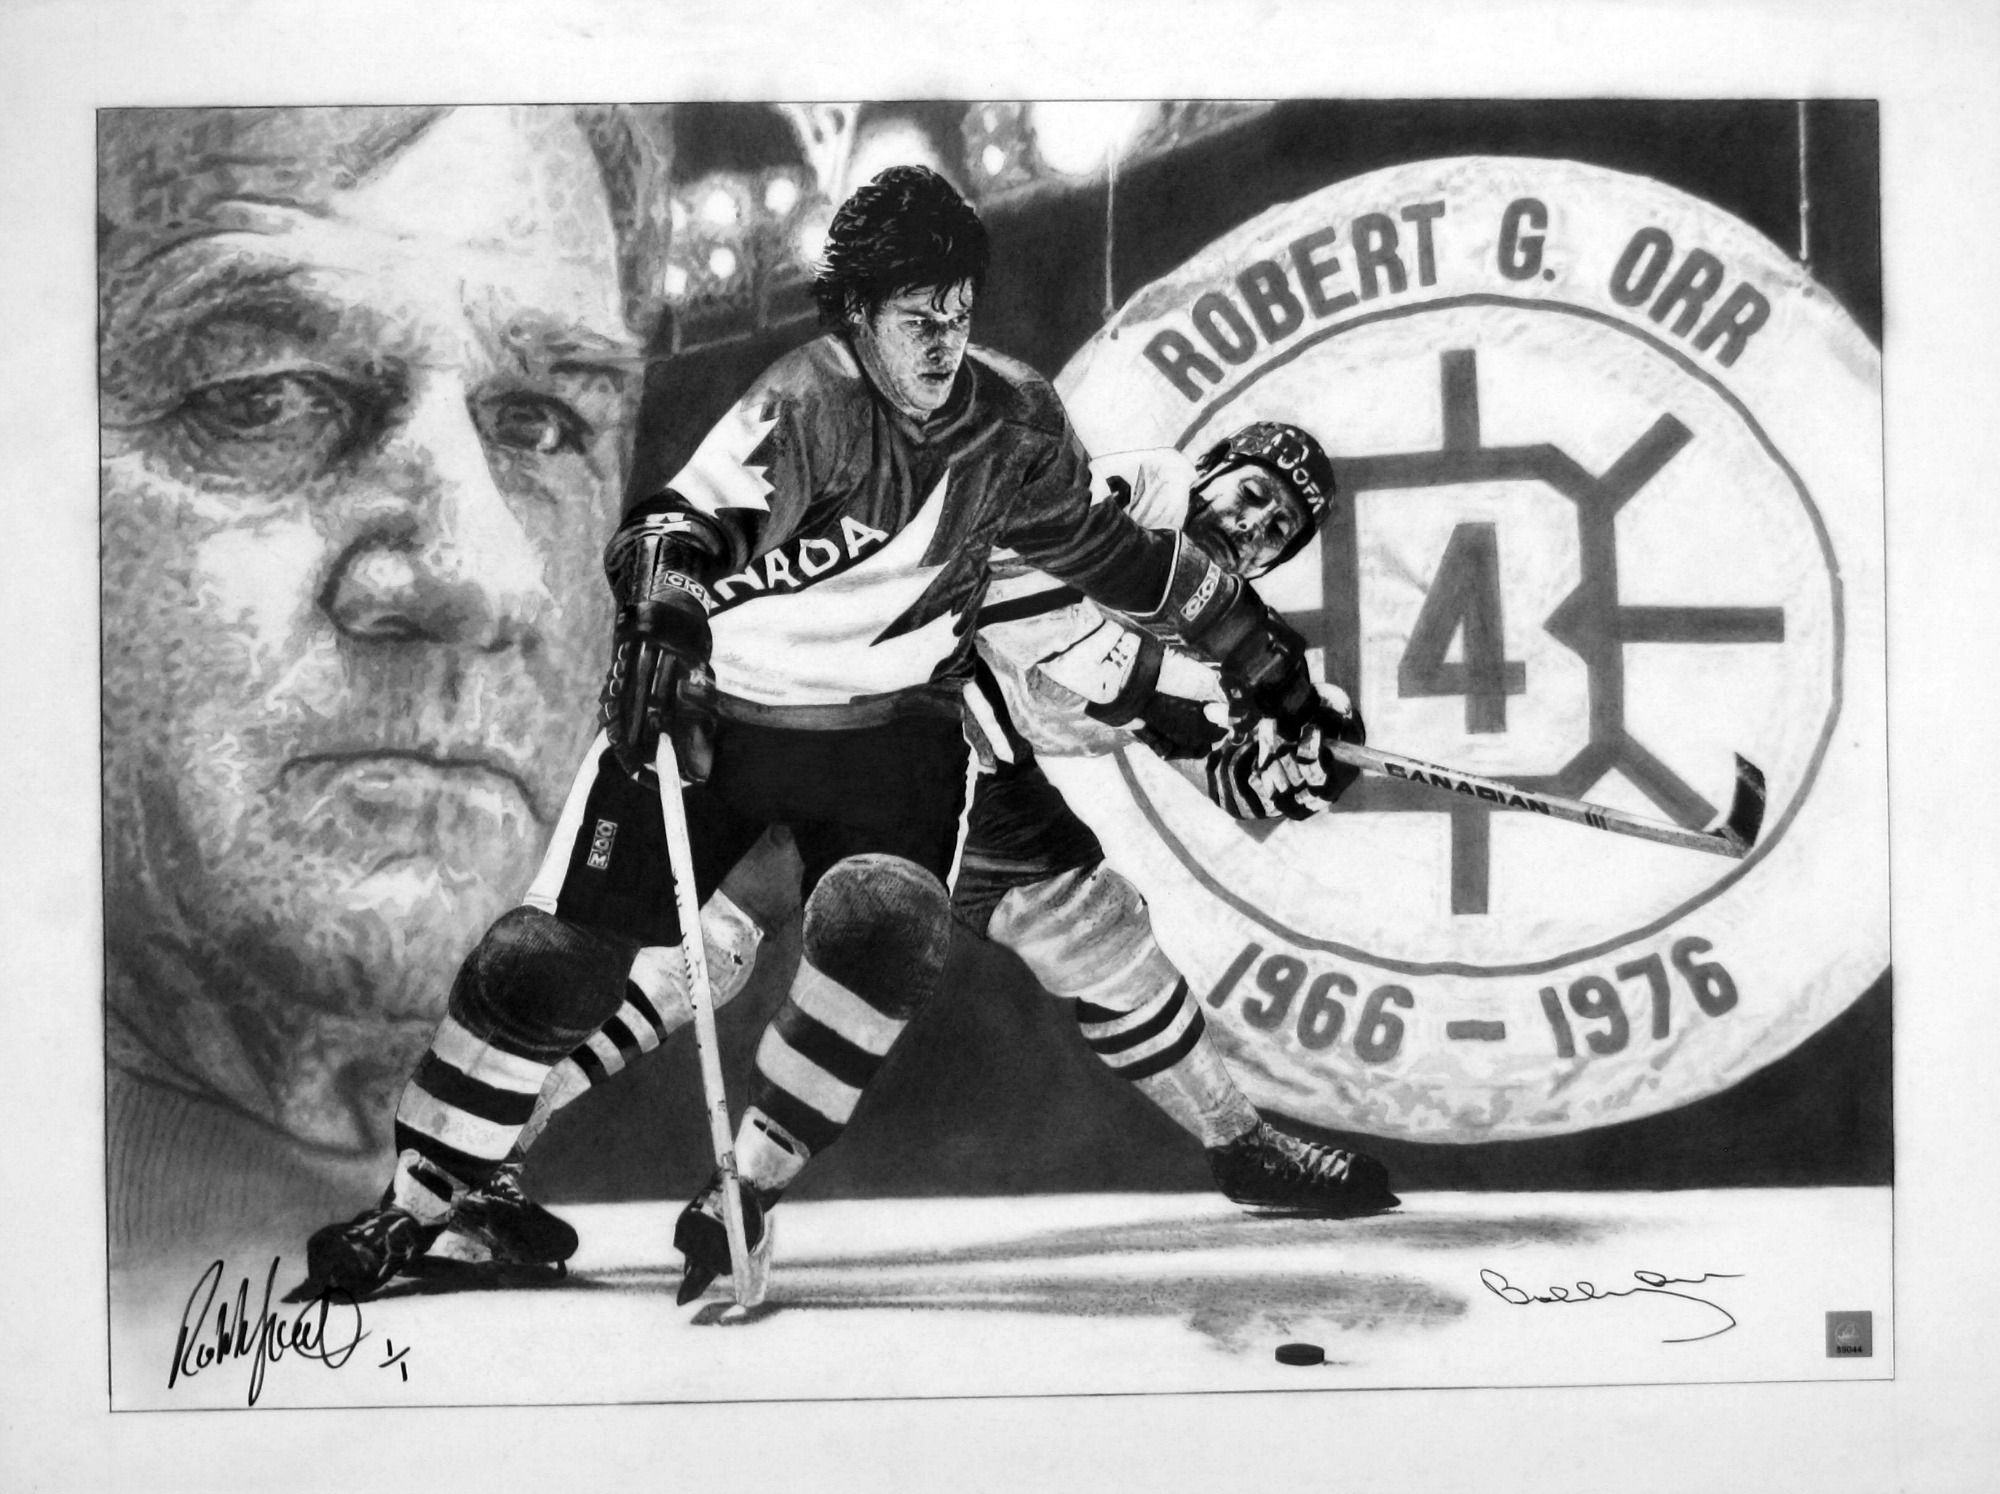 Pencil Drawing By Robb Scott Autographed By Boston Bruin Great Bobby Orr And Artist Robb Scott Bobby Orr Boston Bruins Hockey Boston Sports